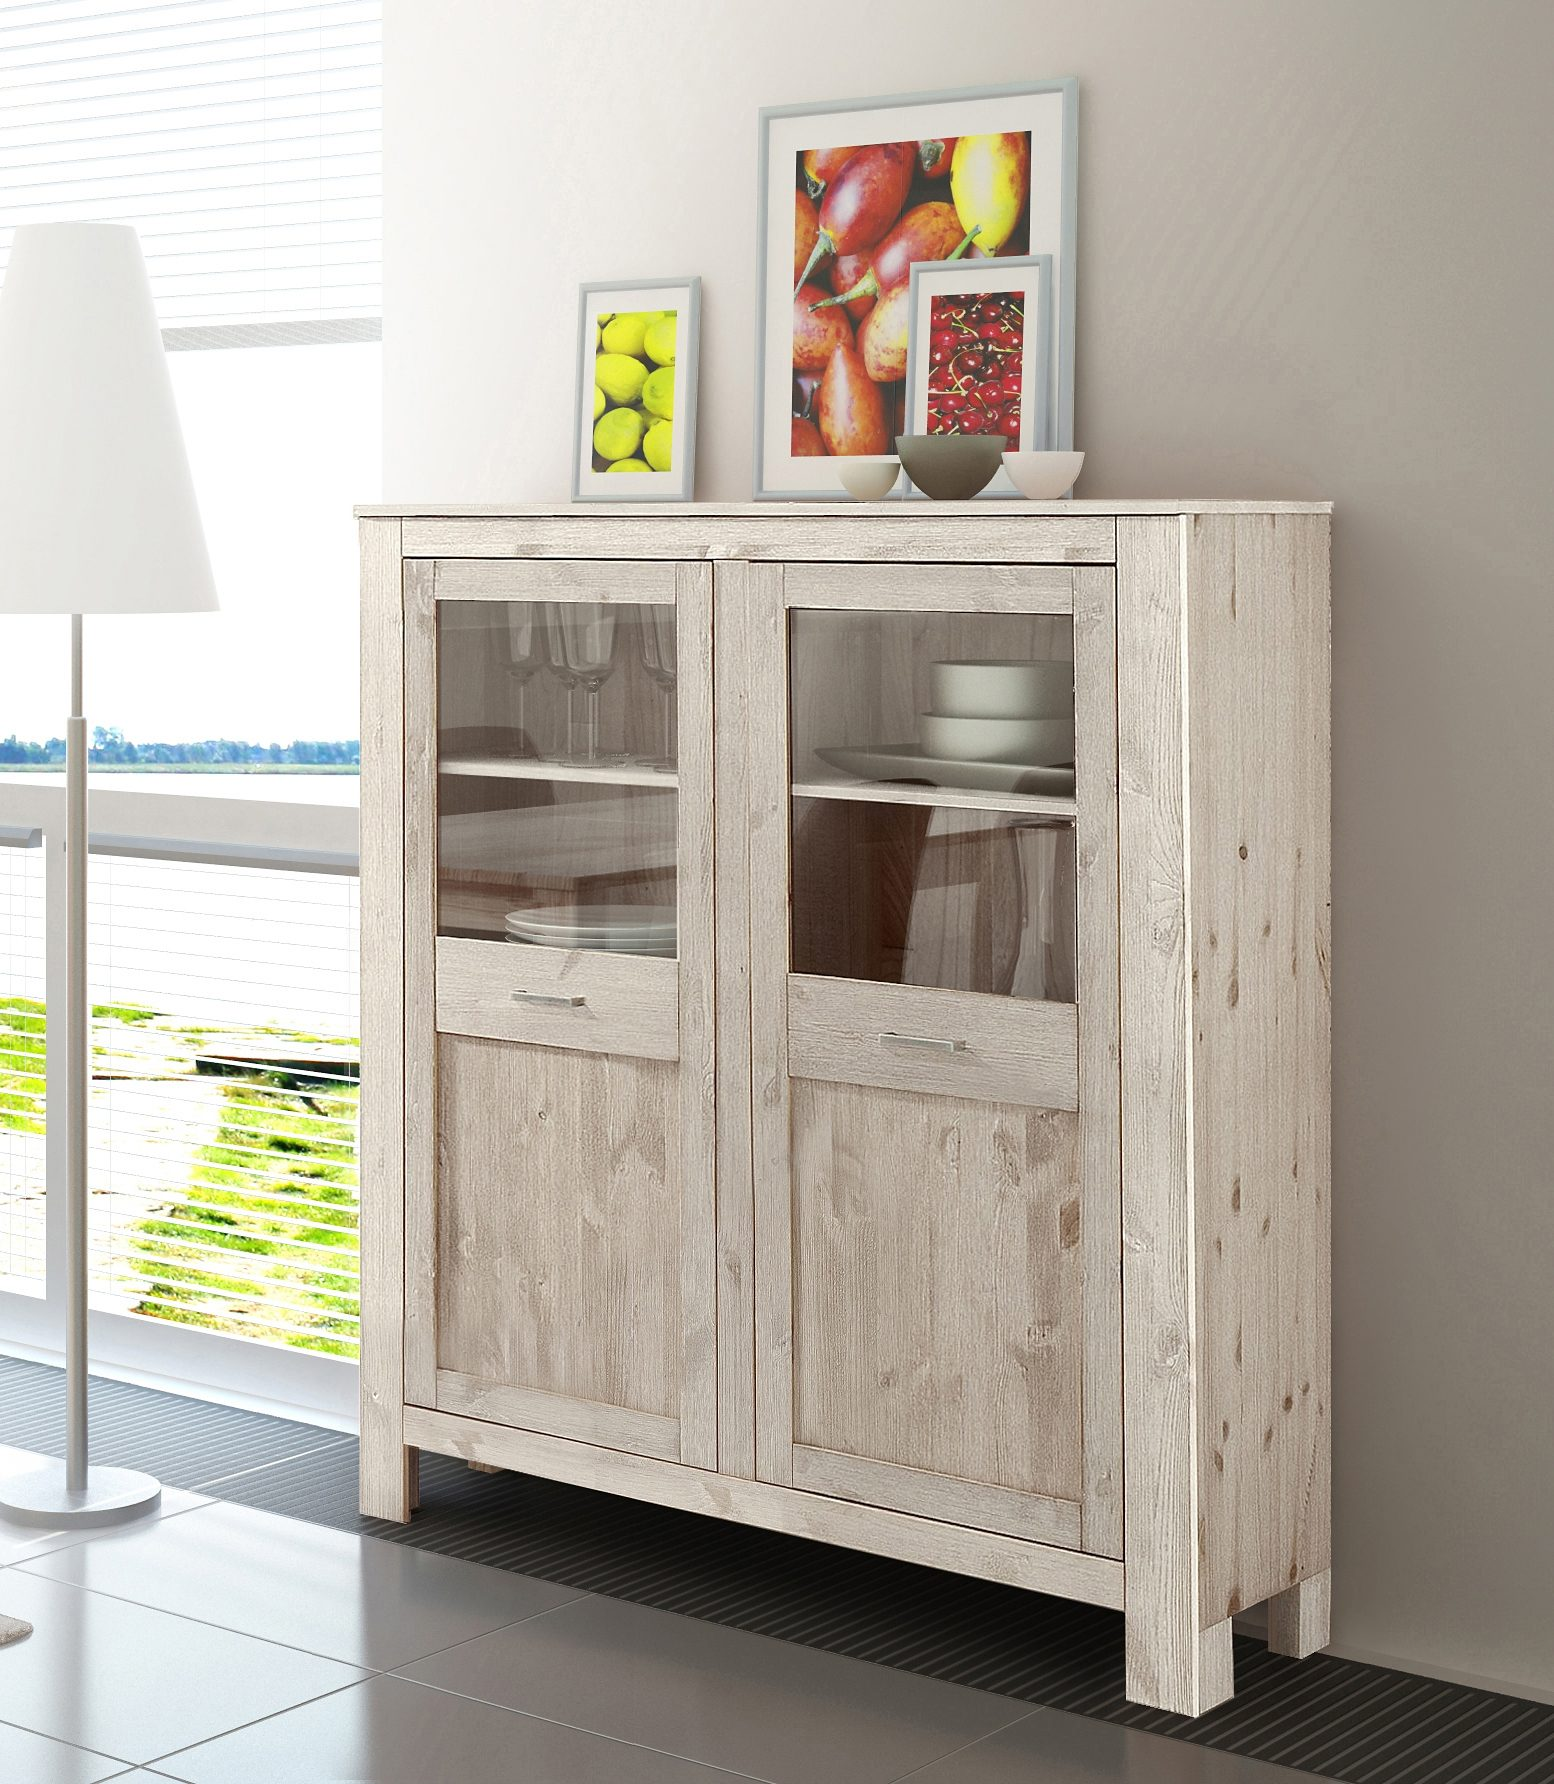 Highboard, Home affaire, Breite 125 cm, Höhe 135 cm